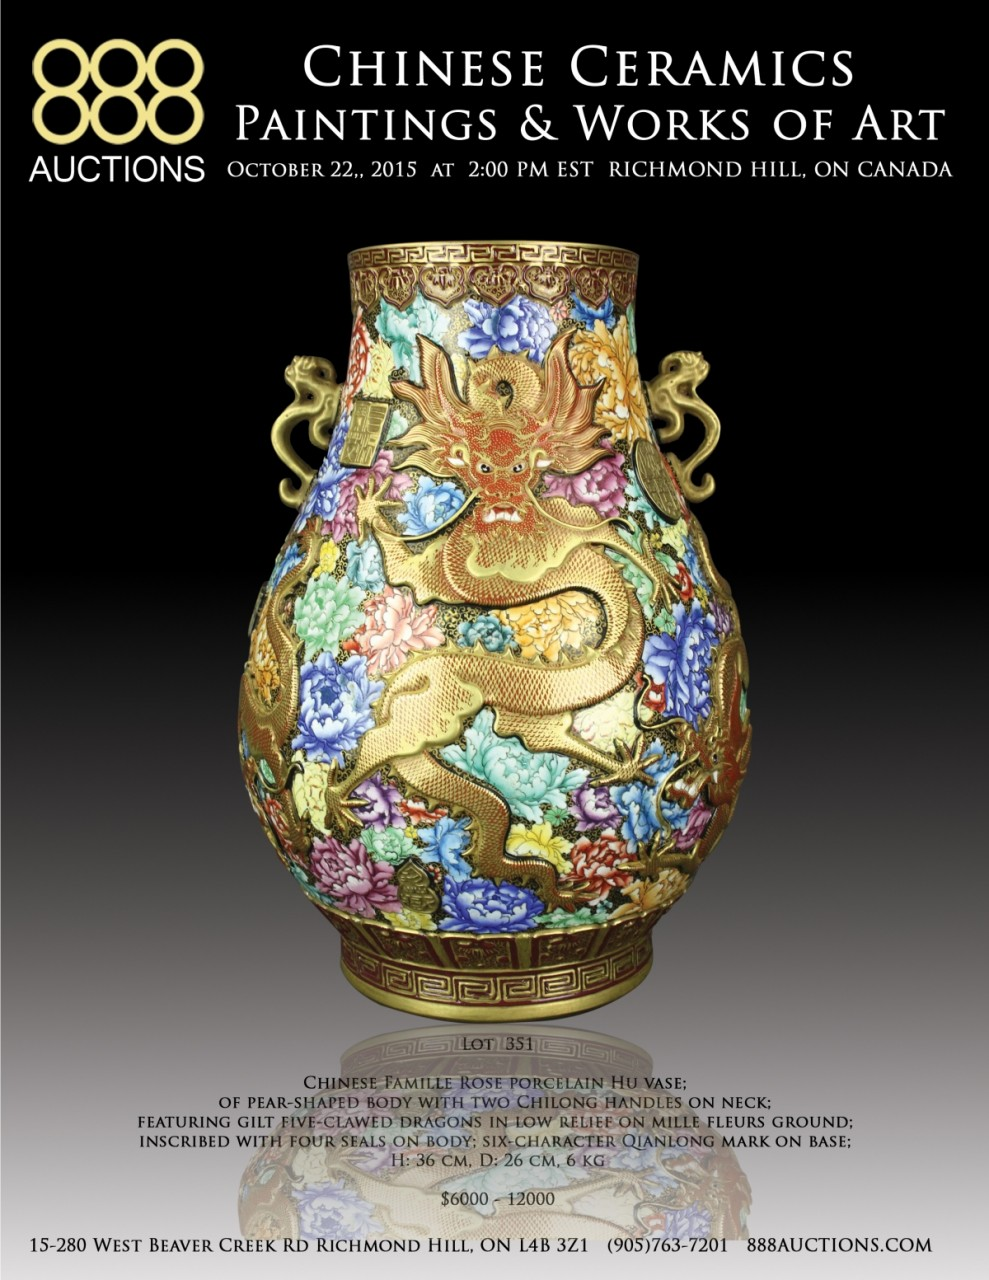 NEXT AUCTION 22 OCT 2015 CHINESE CERAMICS, PAINTINGS & WORKS OF ART